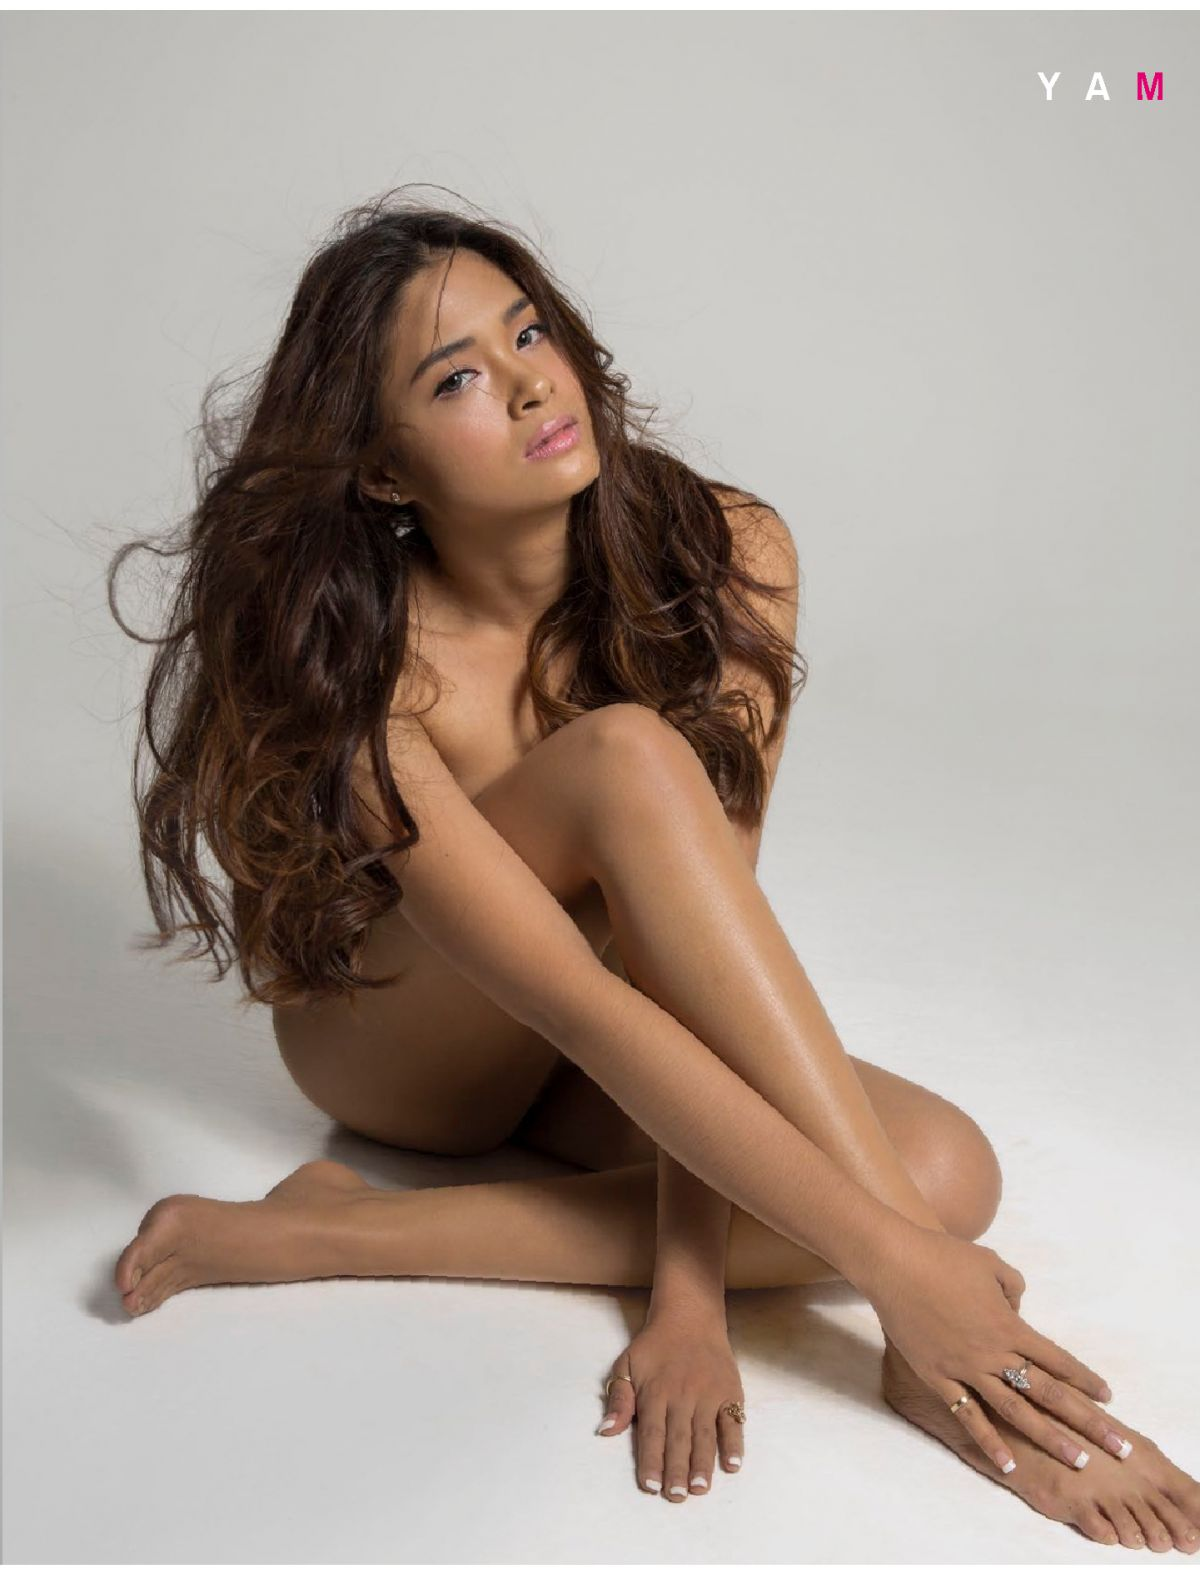 yam concepcion hot fhm naked photos 01